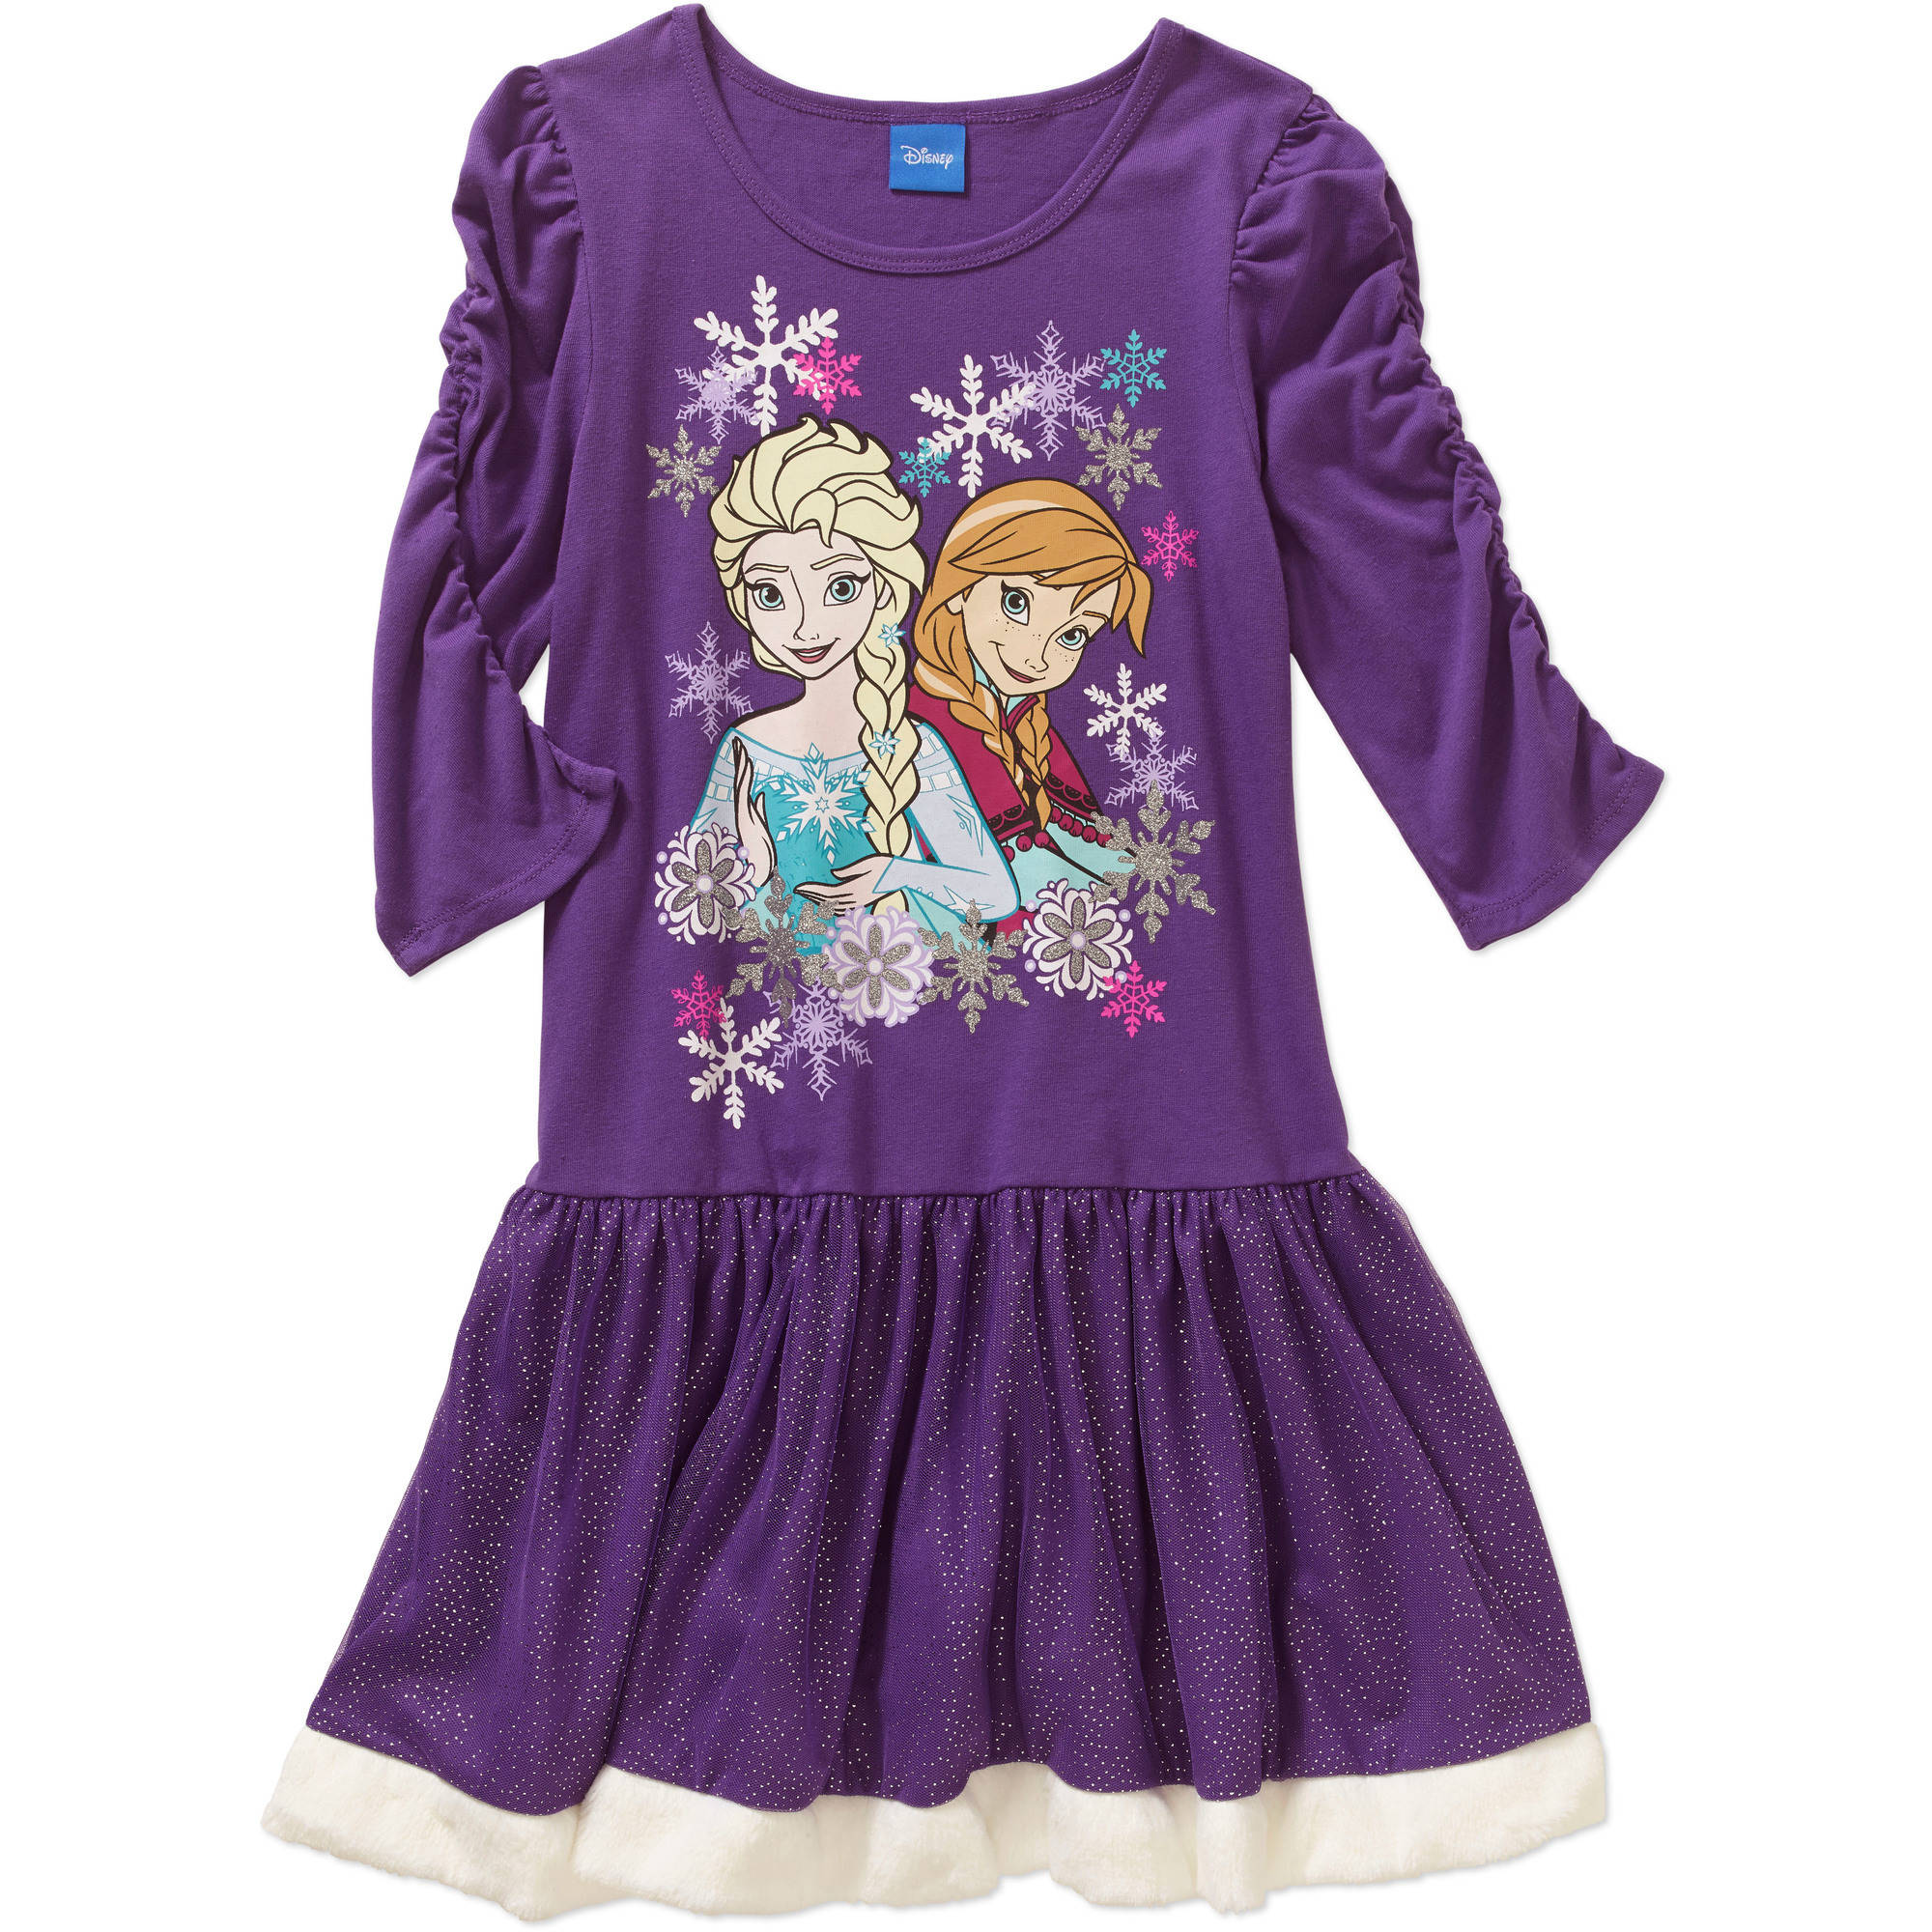 Disney Frozen Girls' Tutu Dress